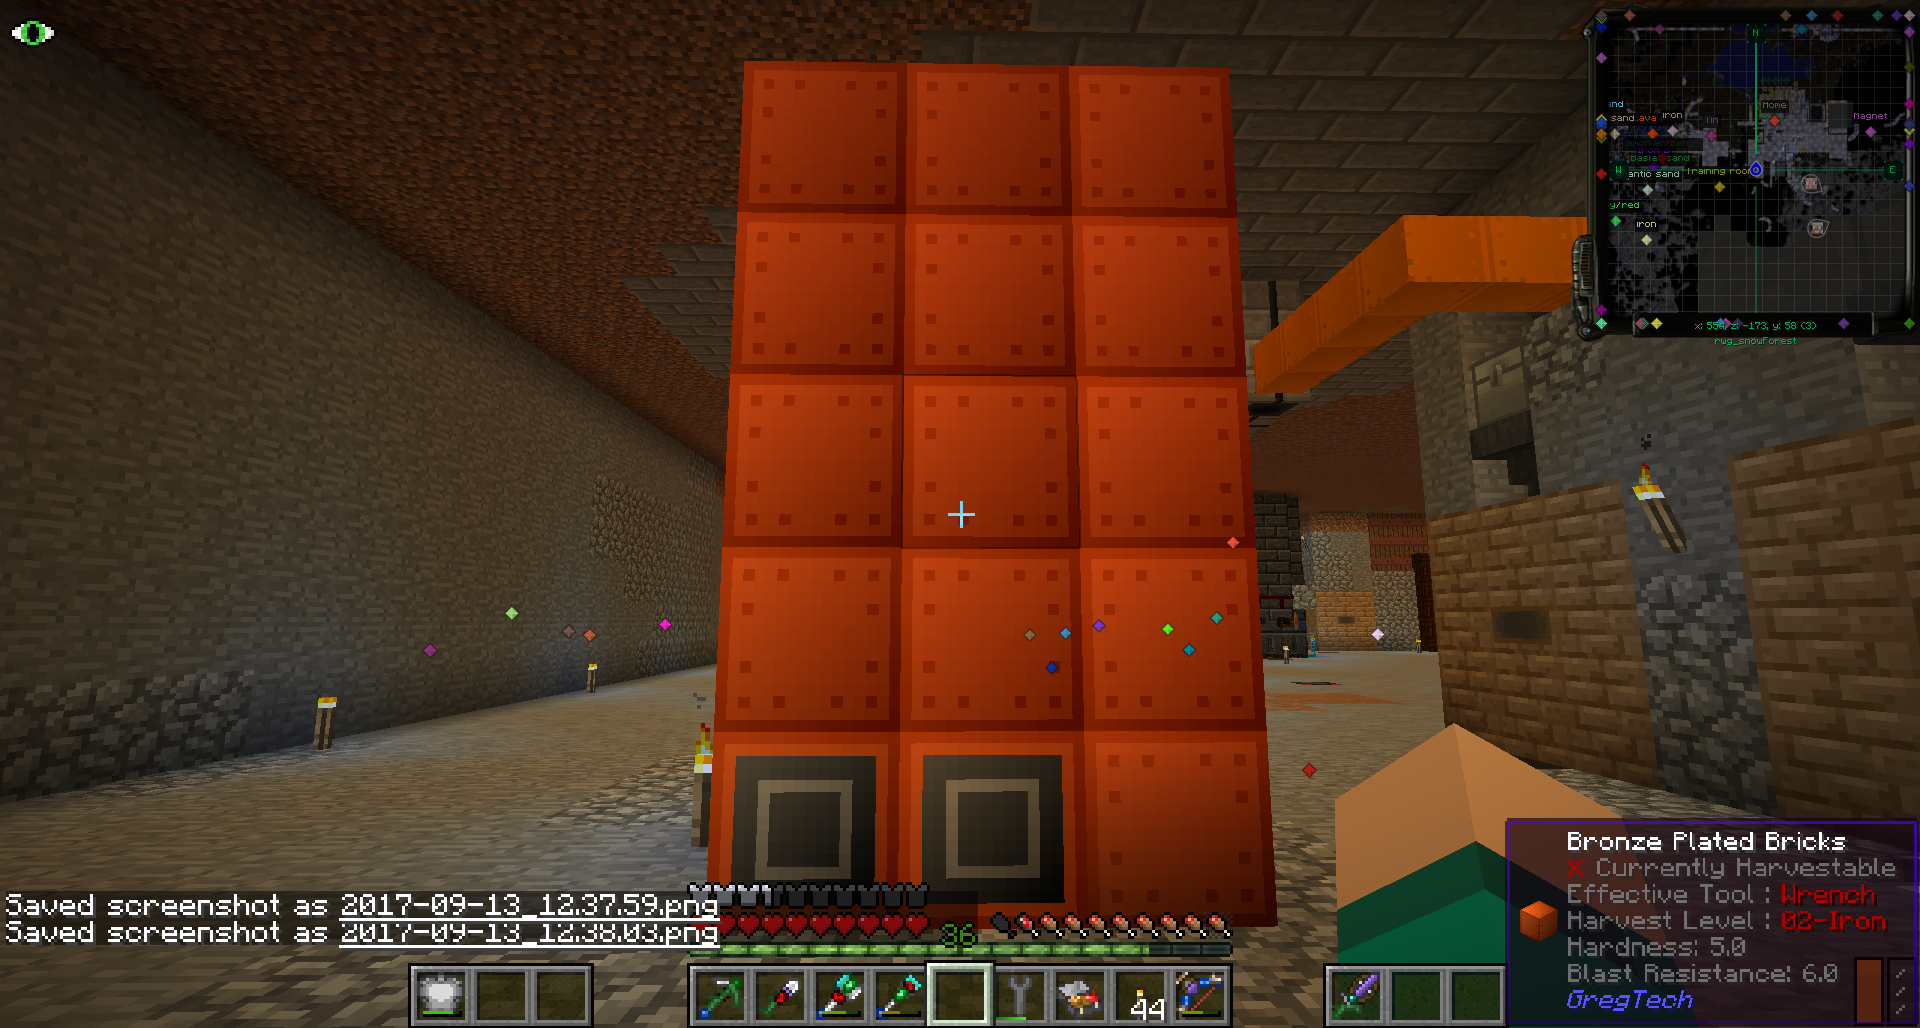 I can not seem to get the large bronze boiler to work